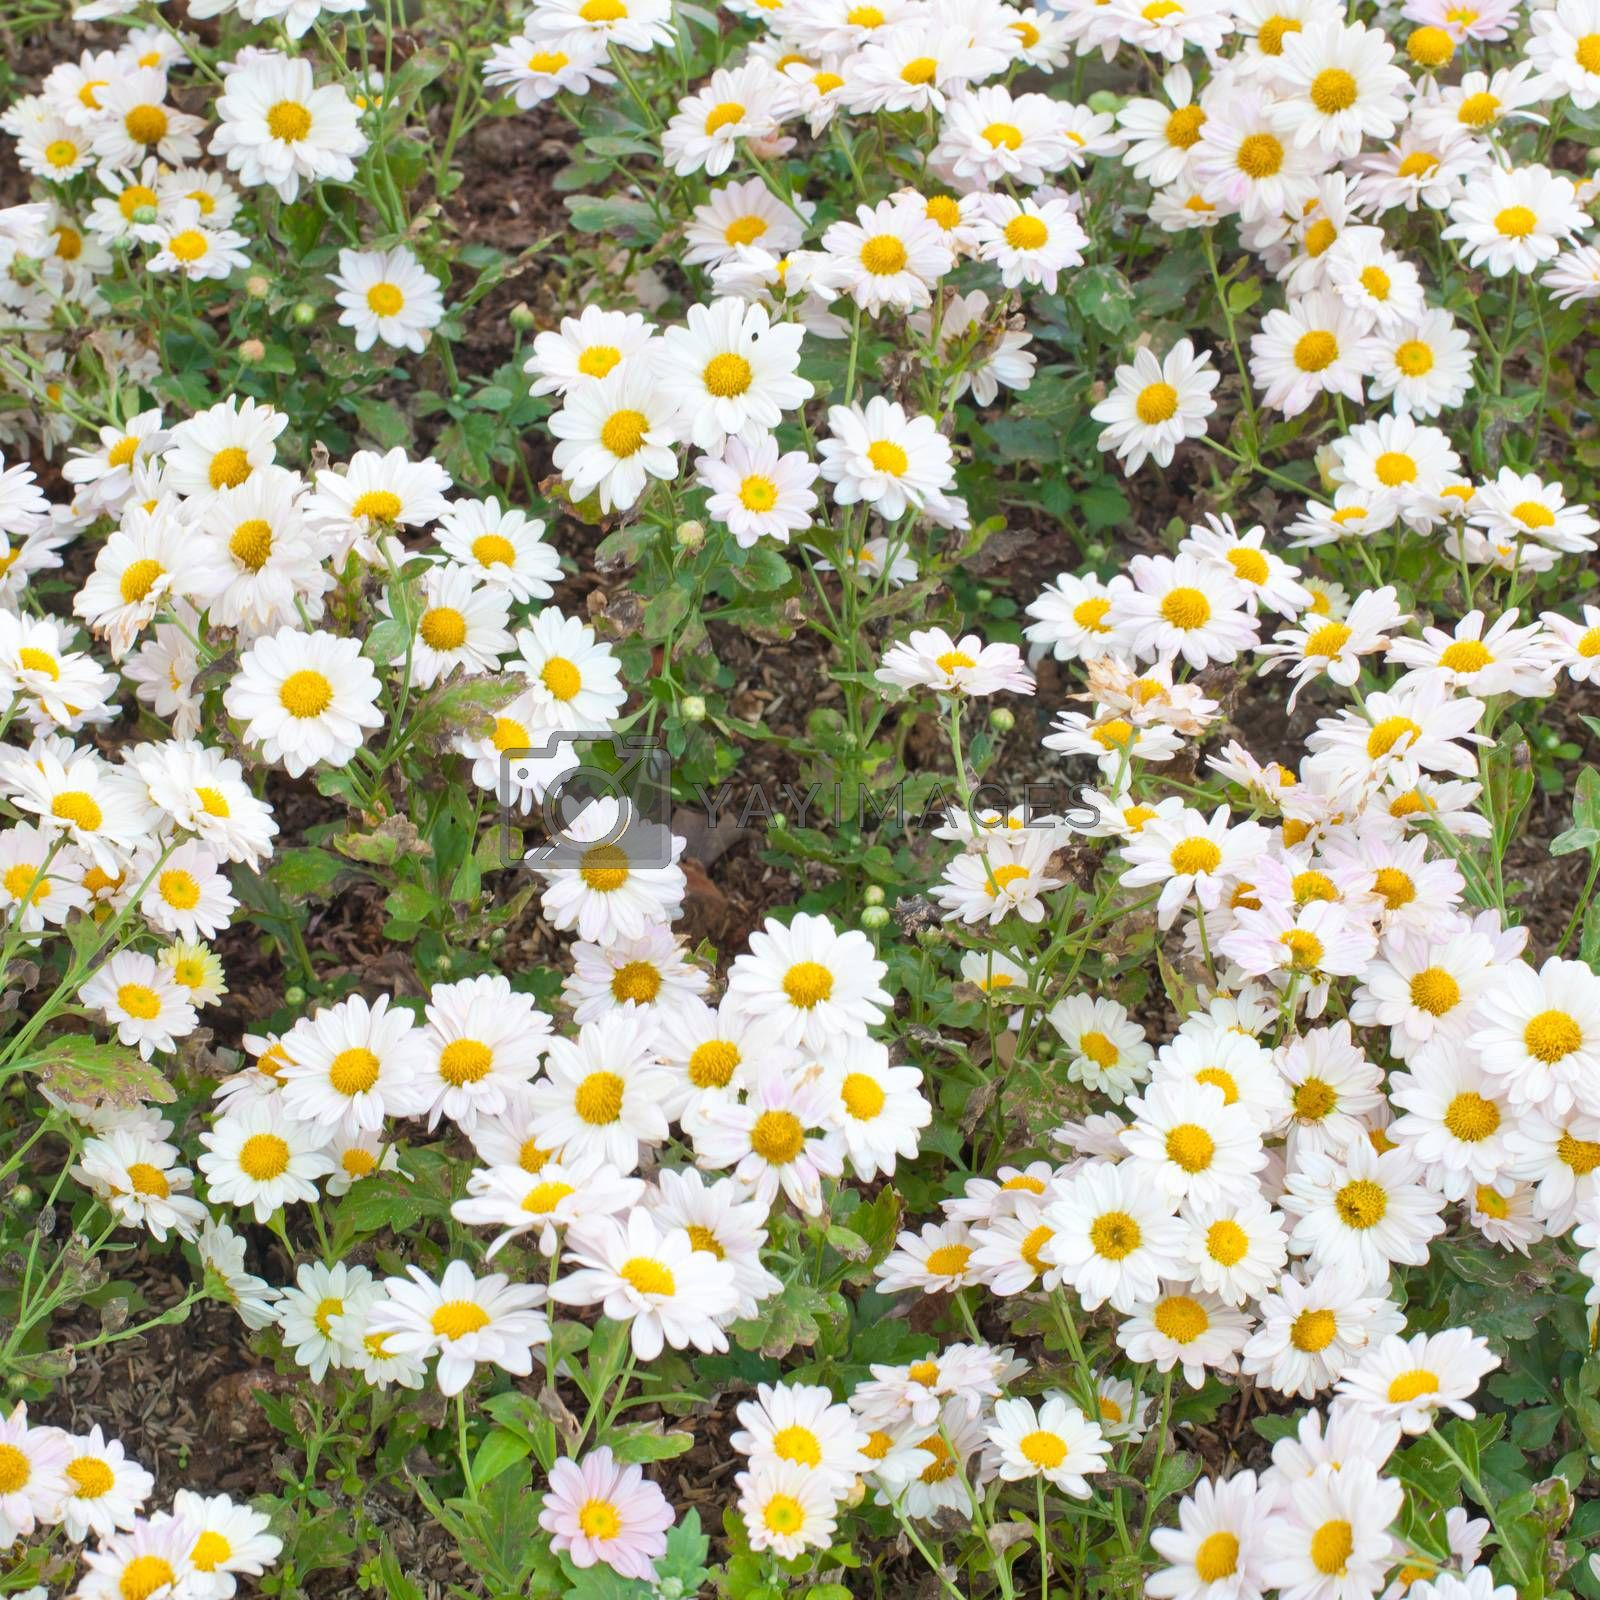 Group of daisy flower texture as background